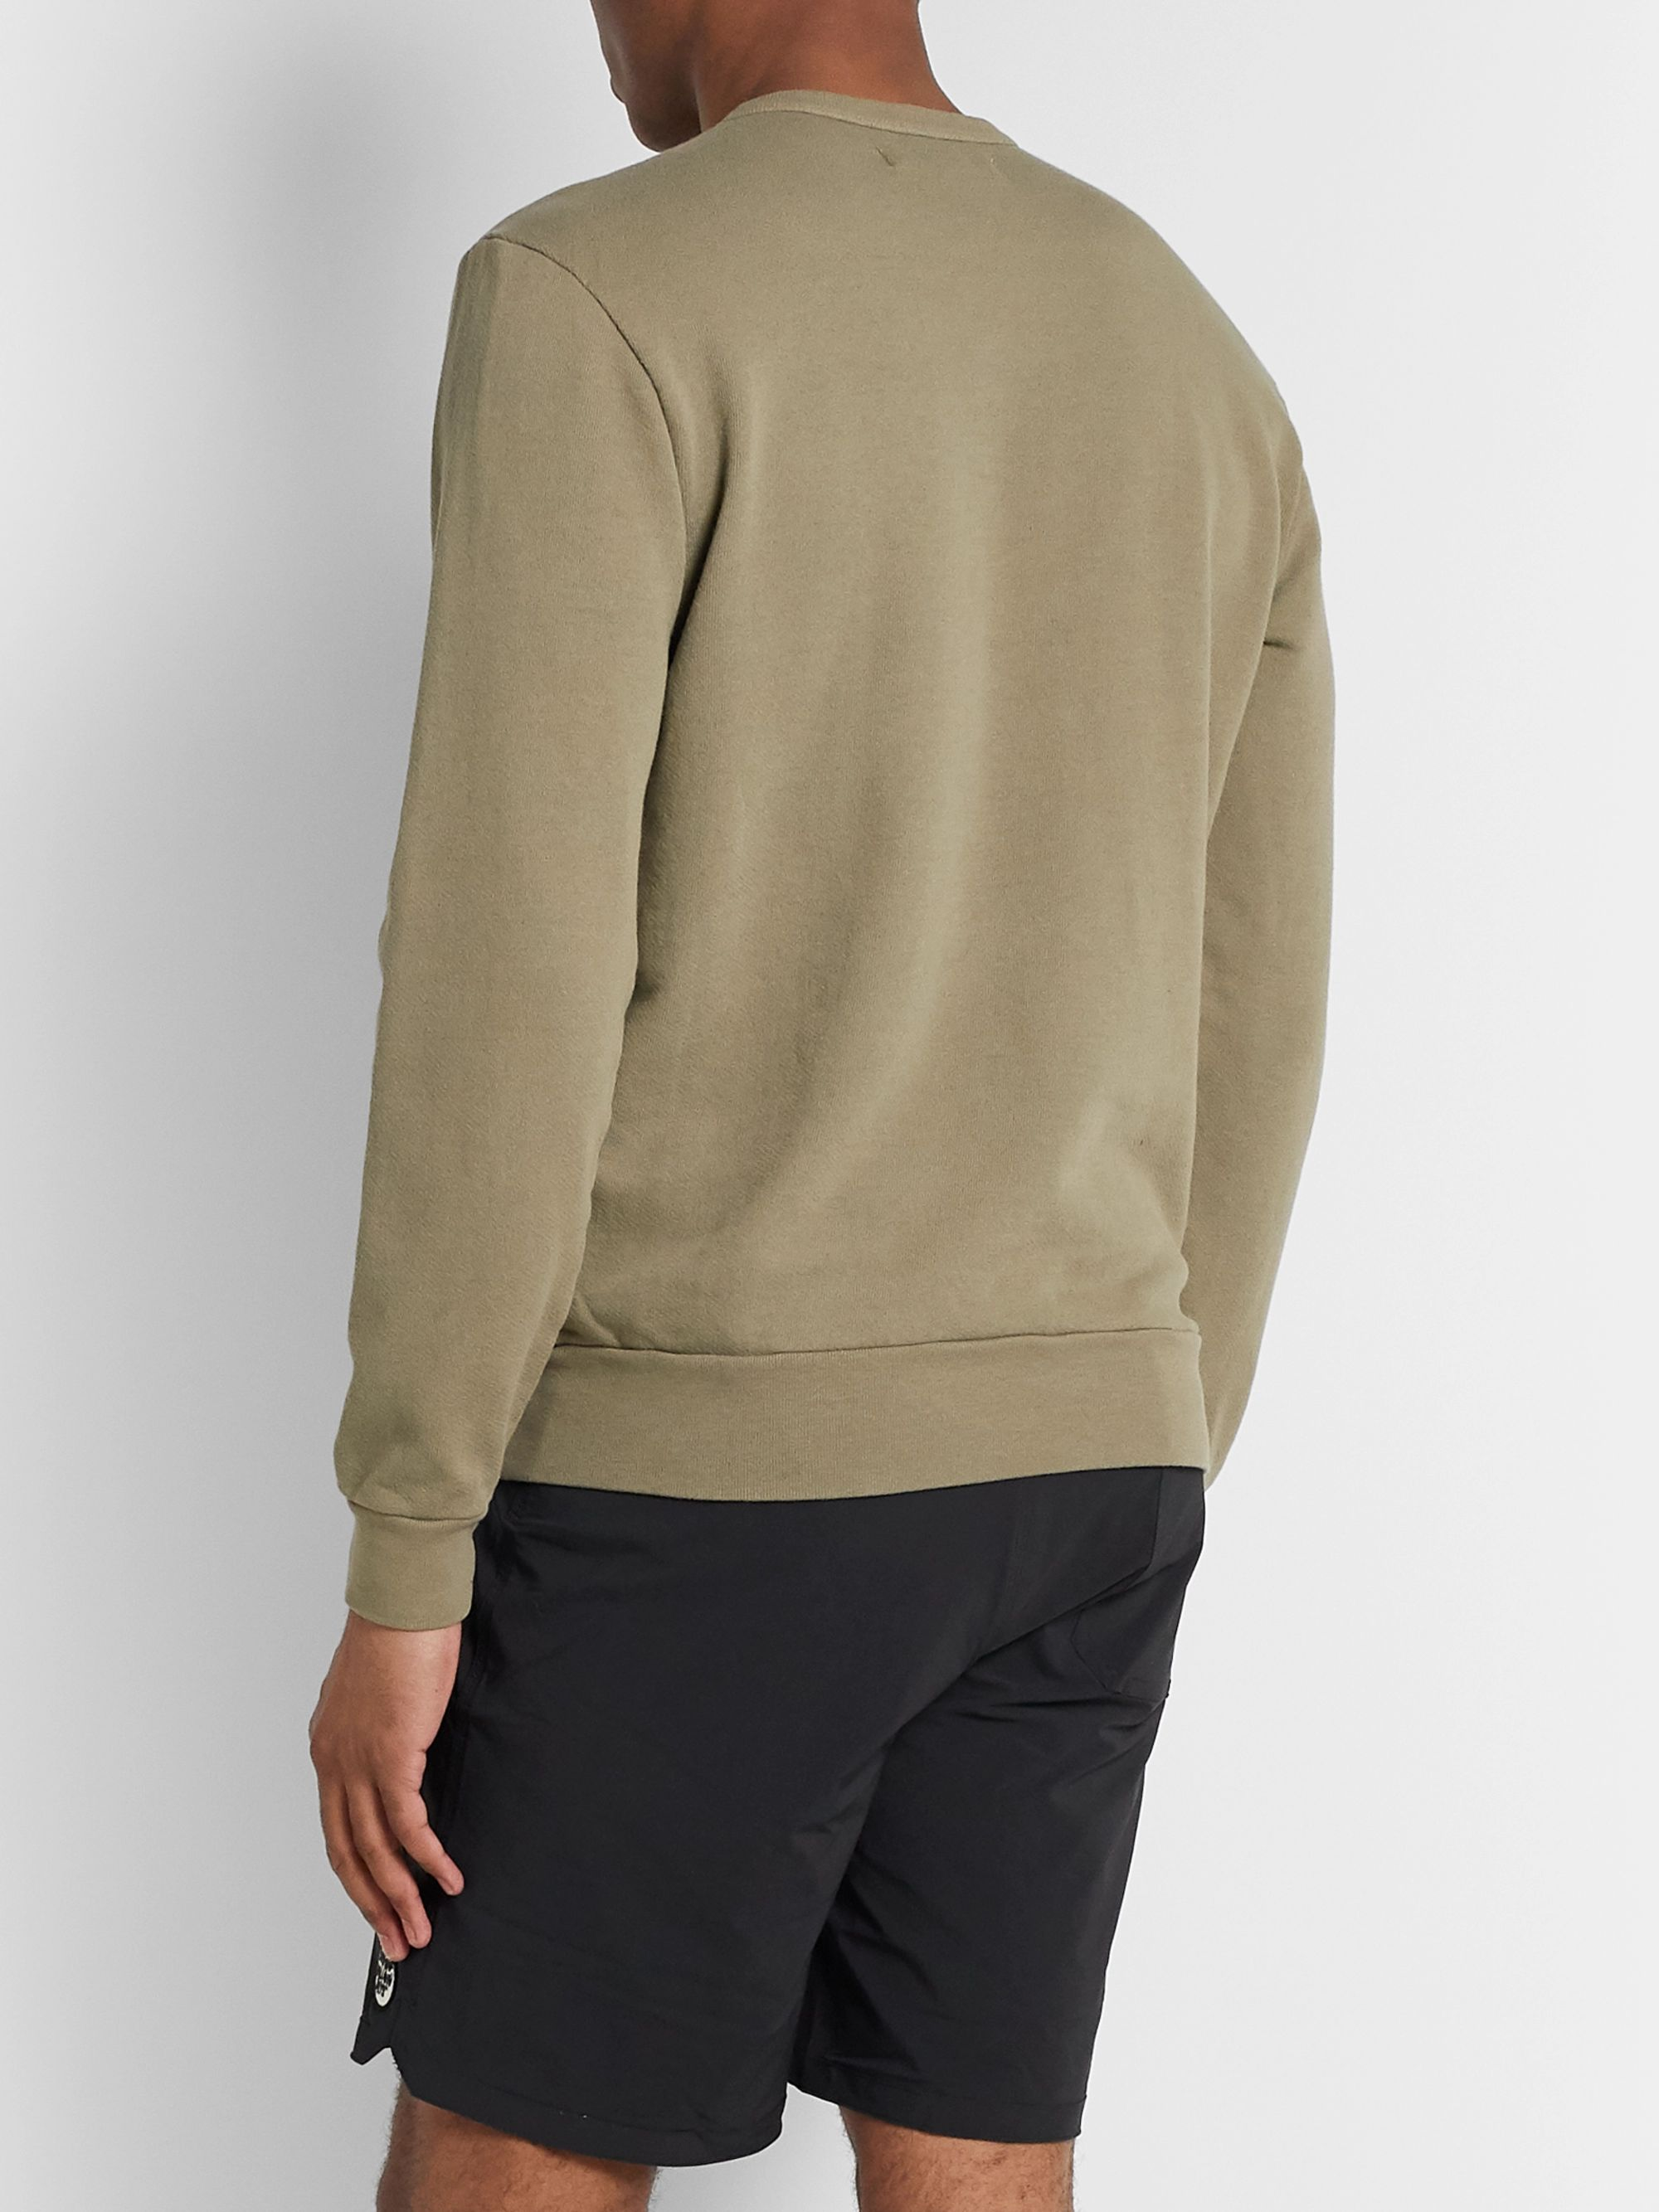 Outerknown Printed Loopback Organic Cotton-Blend Jersey Sweatshirt